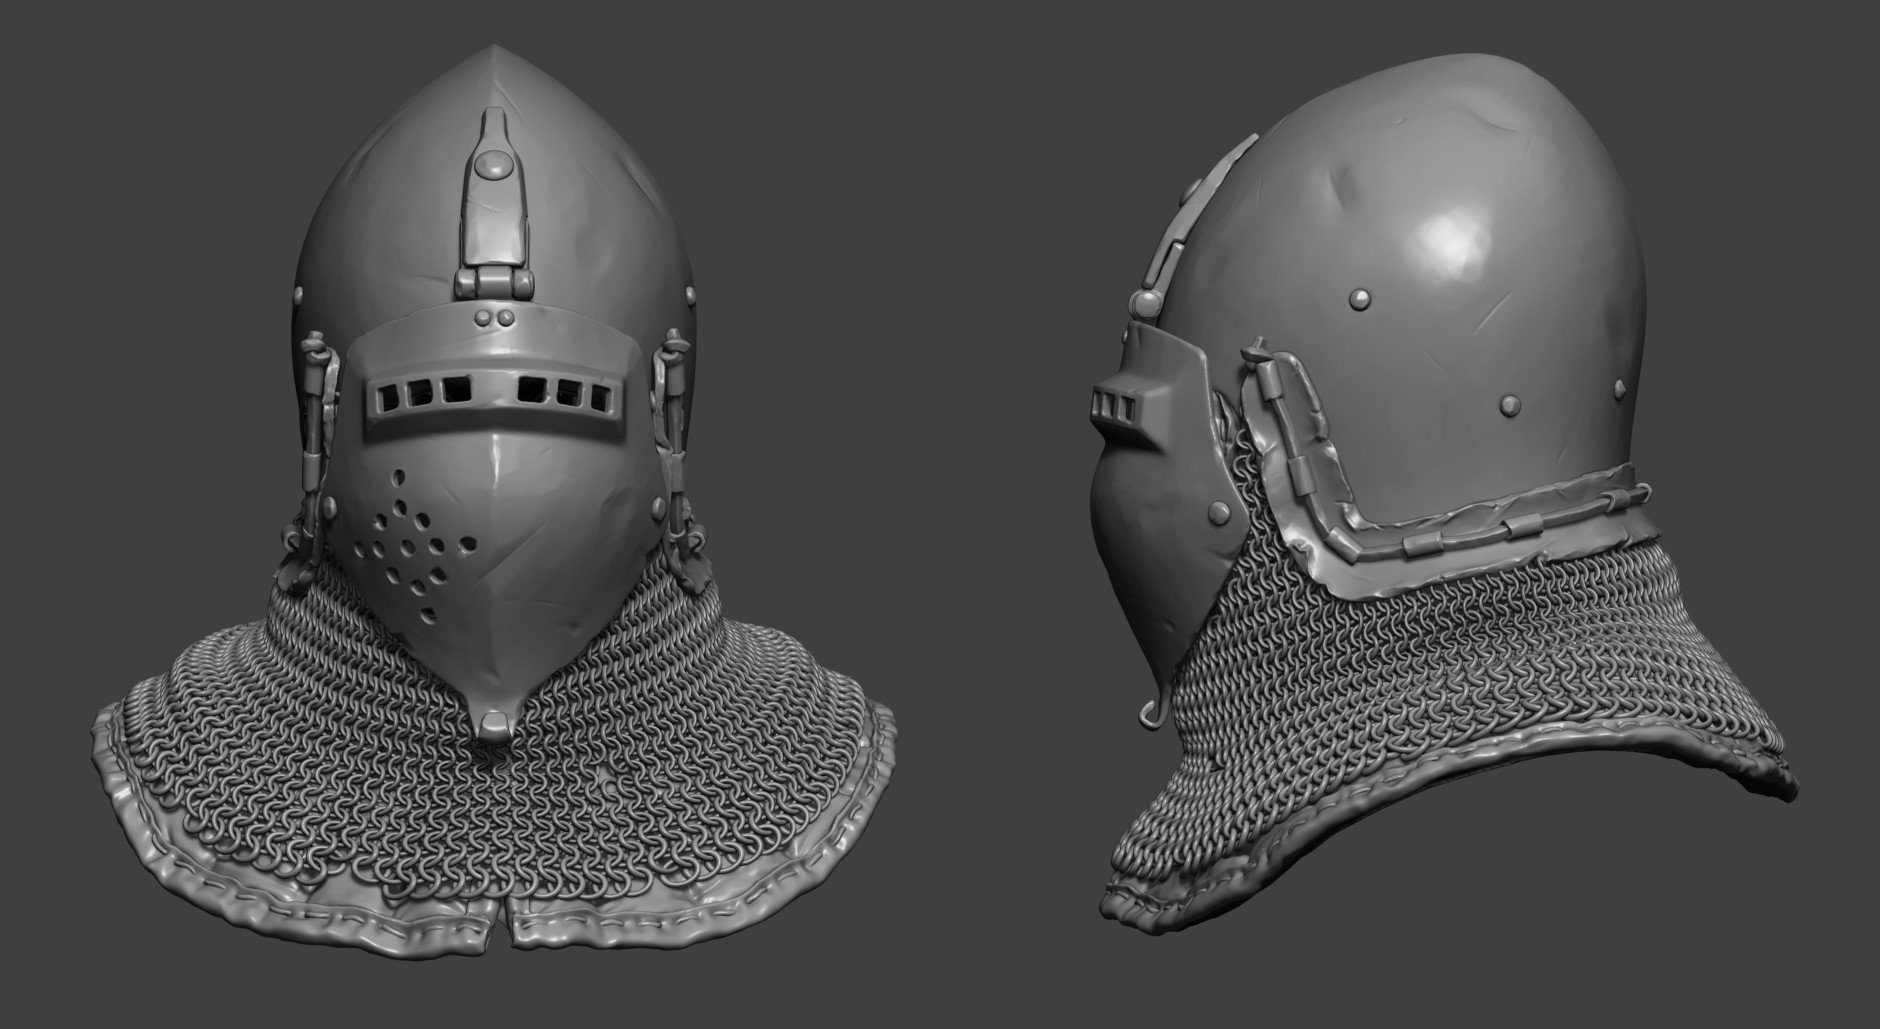 Petr sokolov artpity knight hp helmet close